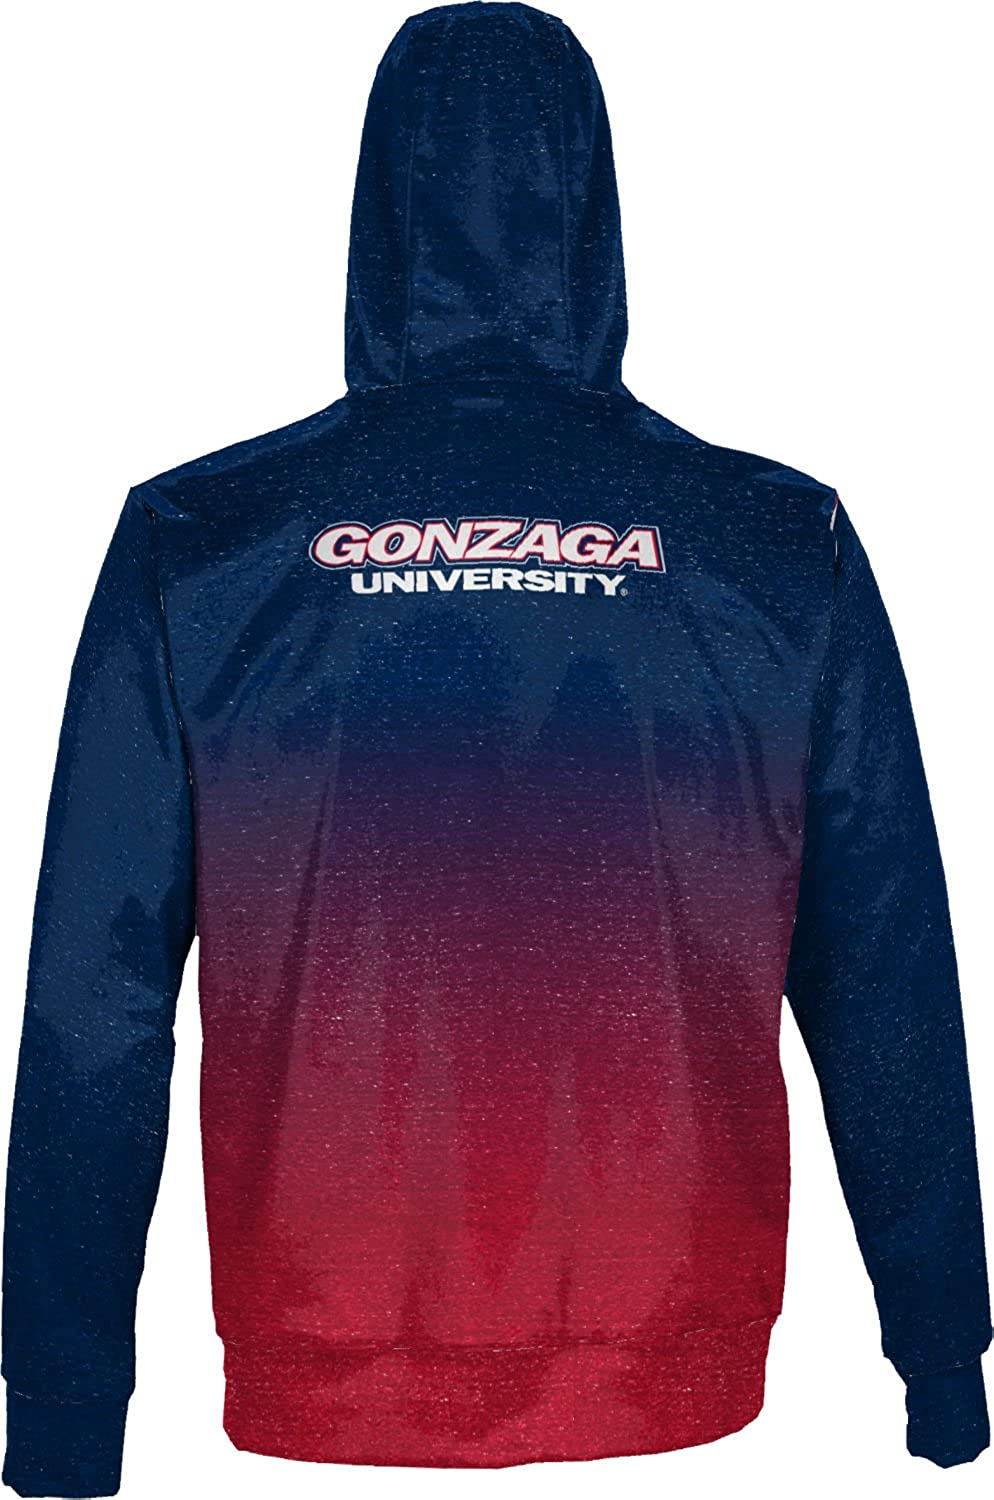 2a14659dc0c Our Collegiate Licensed apparel line for Gonzaga University hoodies are  made with lightweight